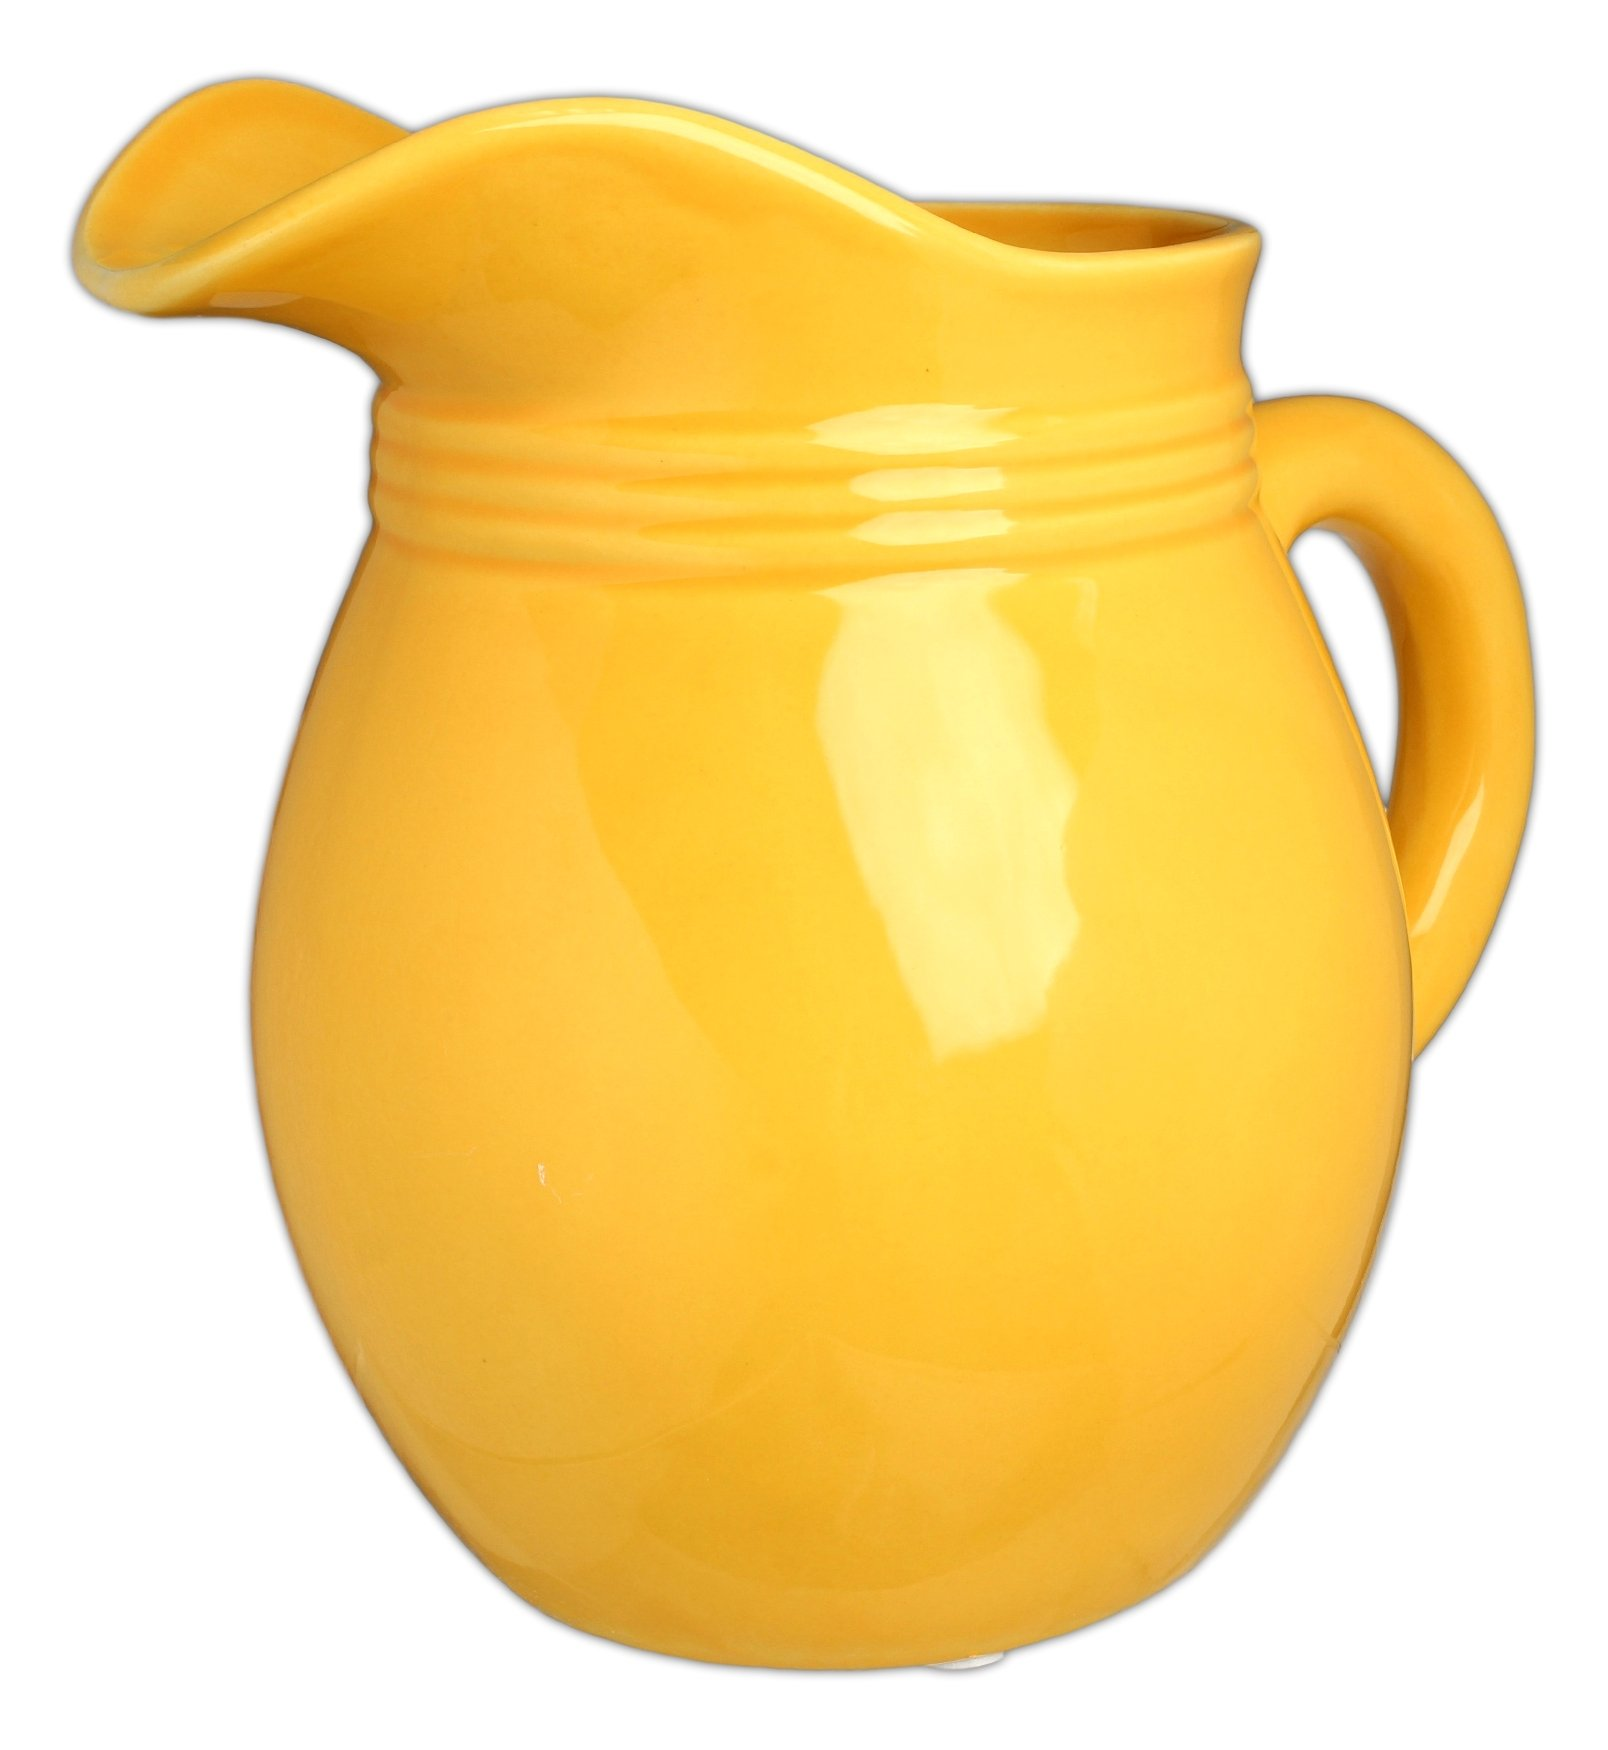 Hill's Park's 6.25'' x 6'' Golden Yellow Decorative Pitcher by Hill's Park's